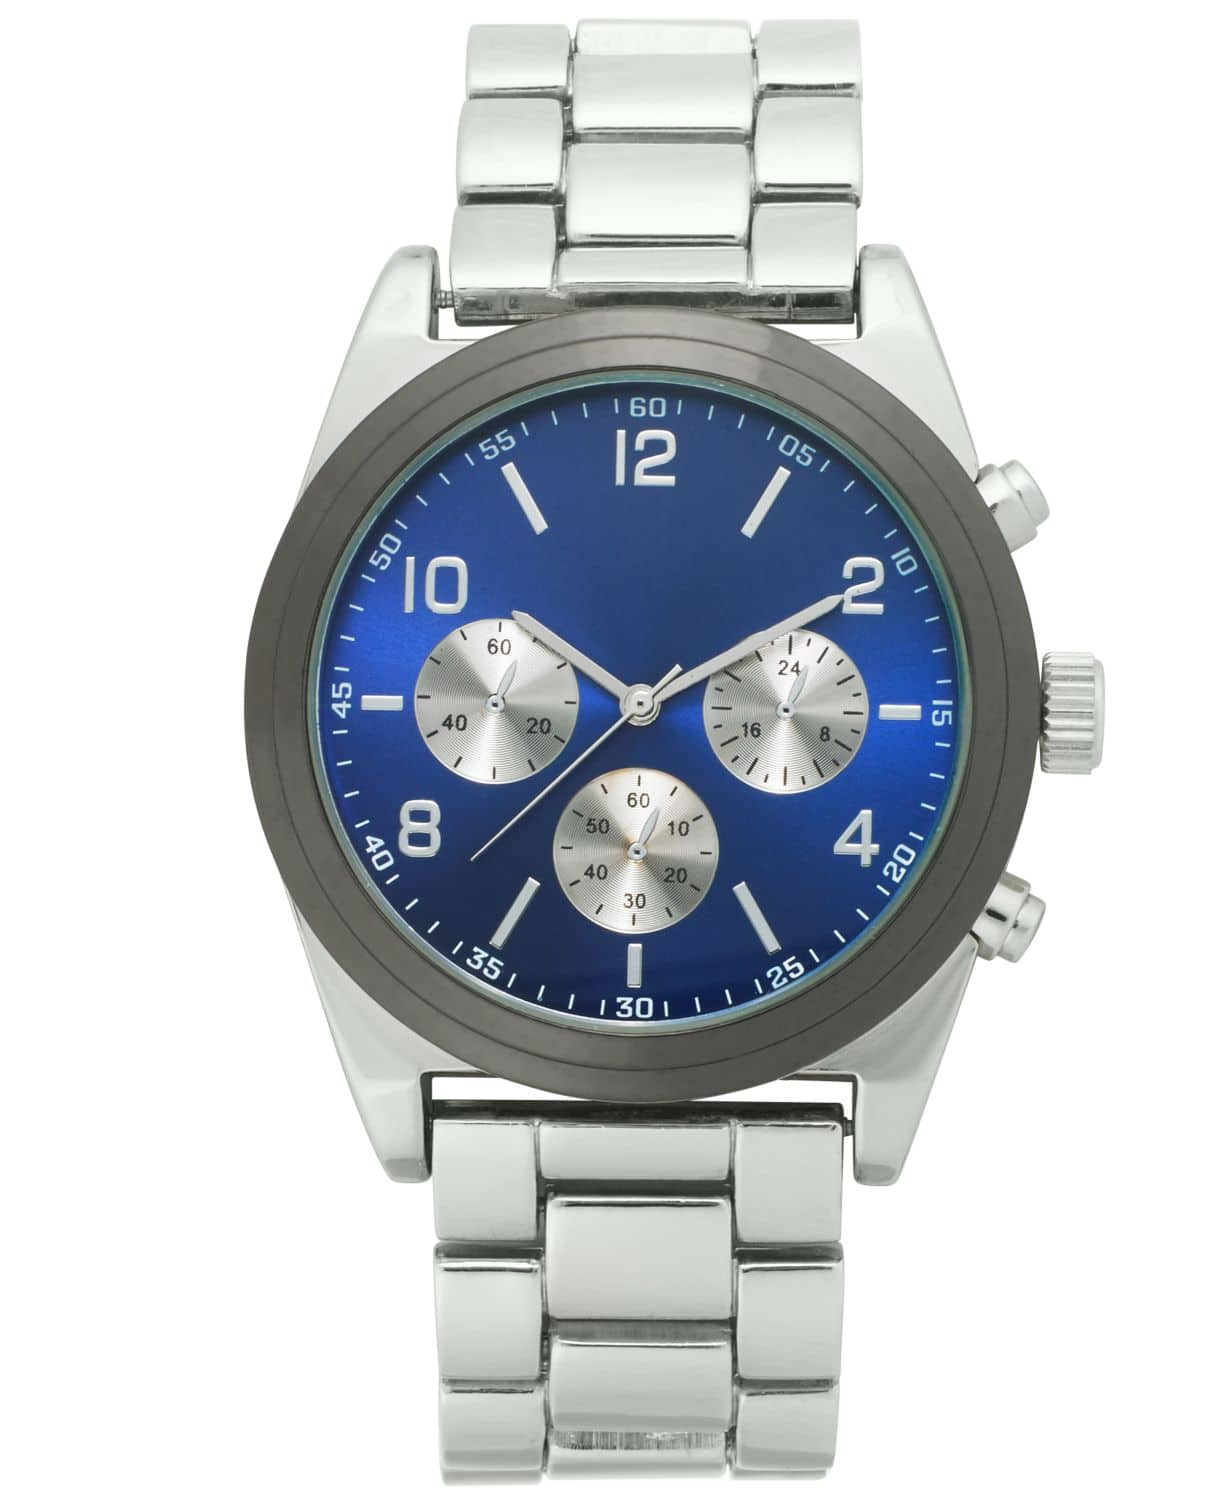 INC International Concepts Men's Watches $15 at Macy's w/ Free Shipping on $25+